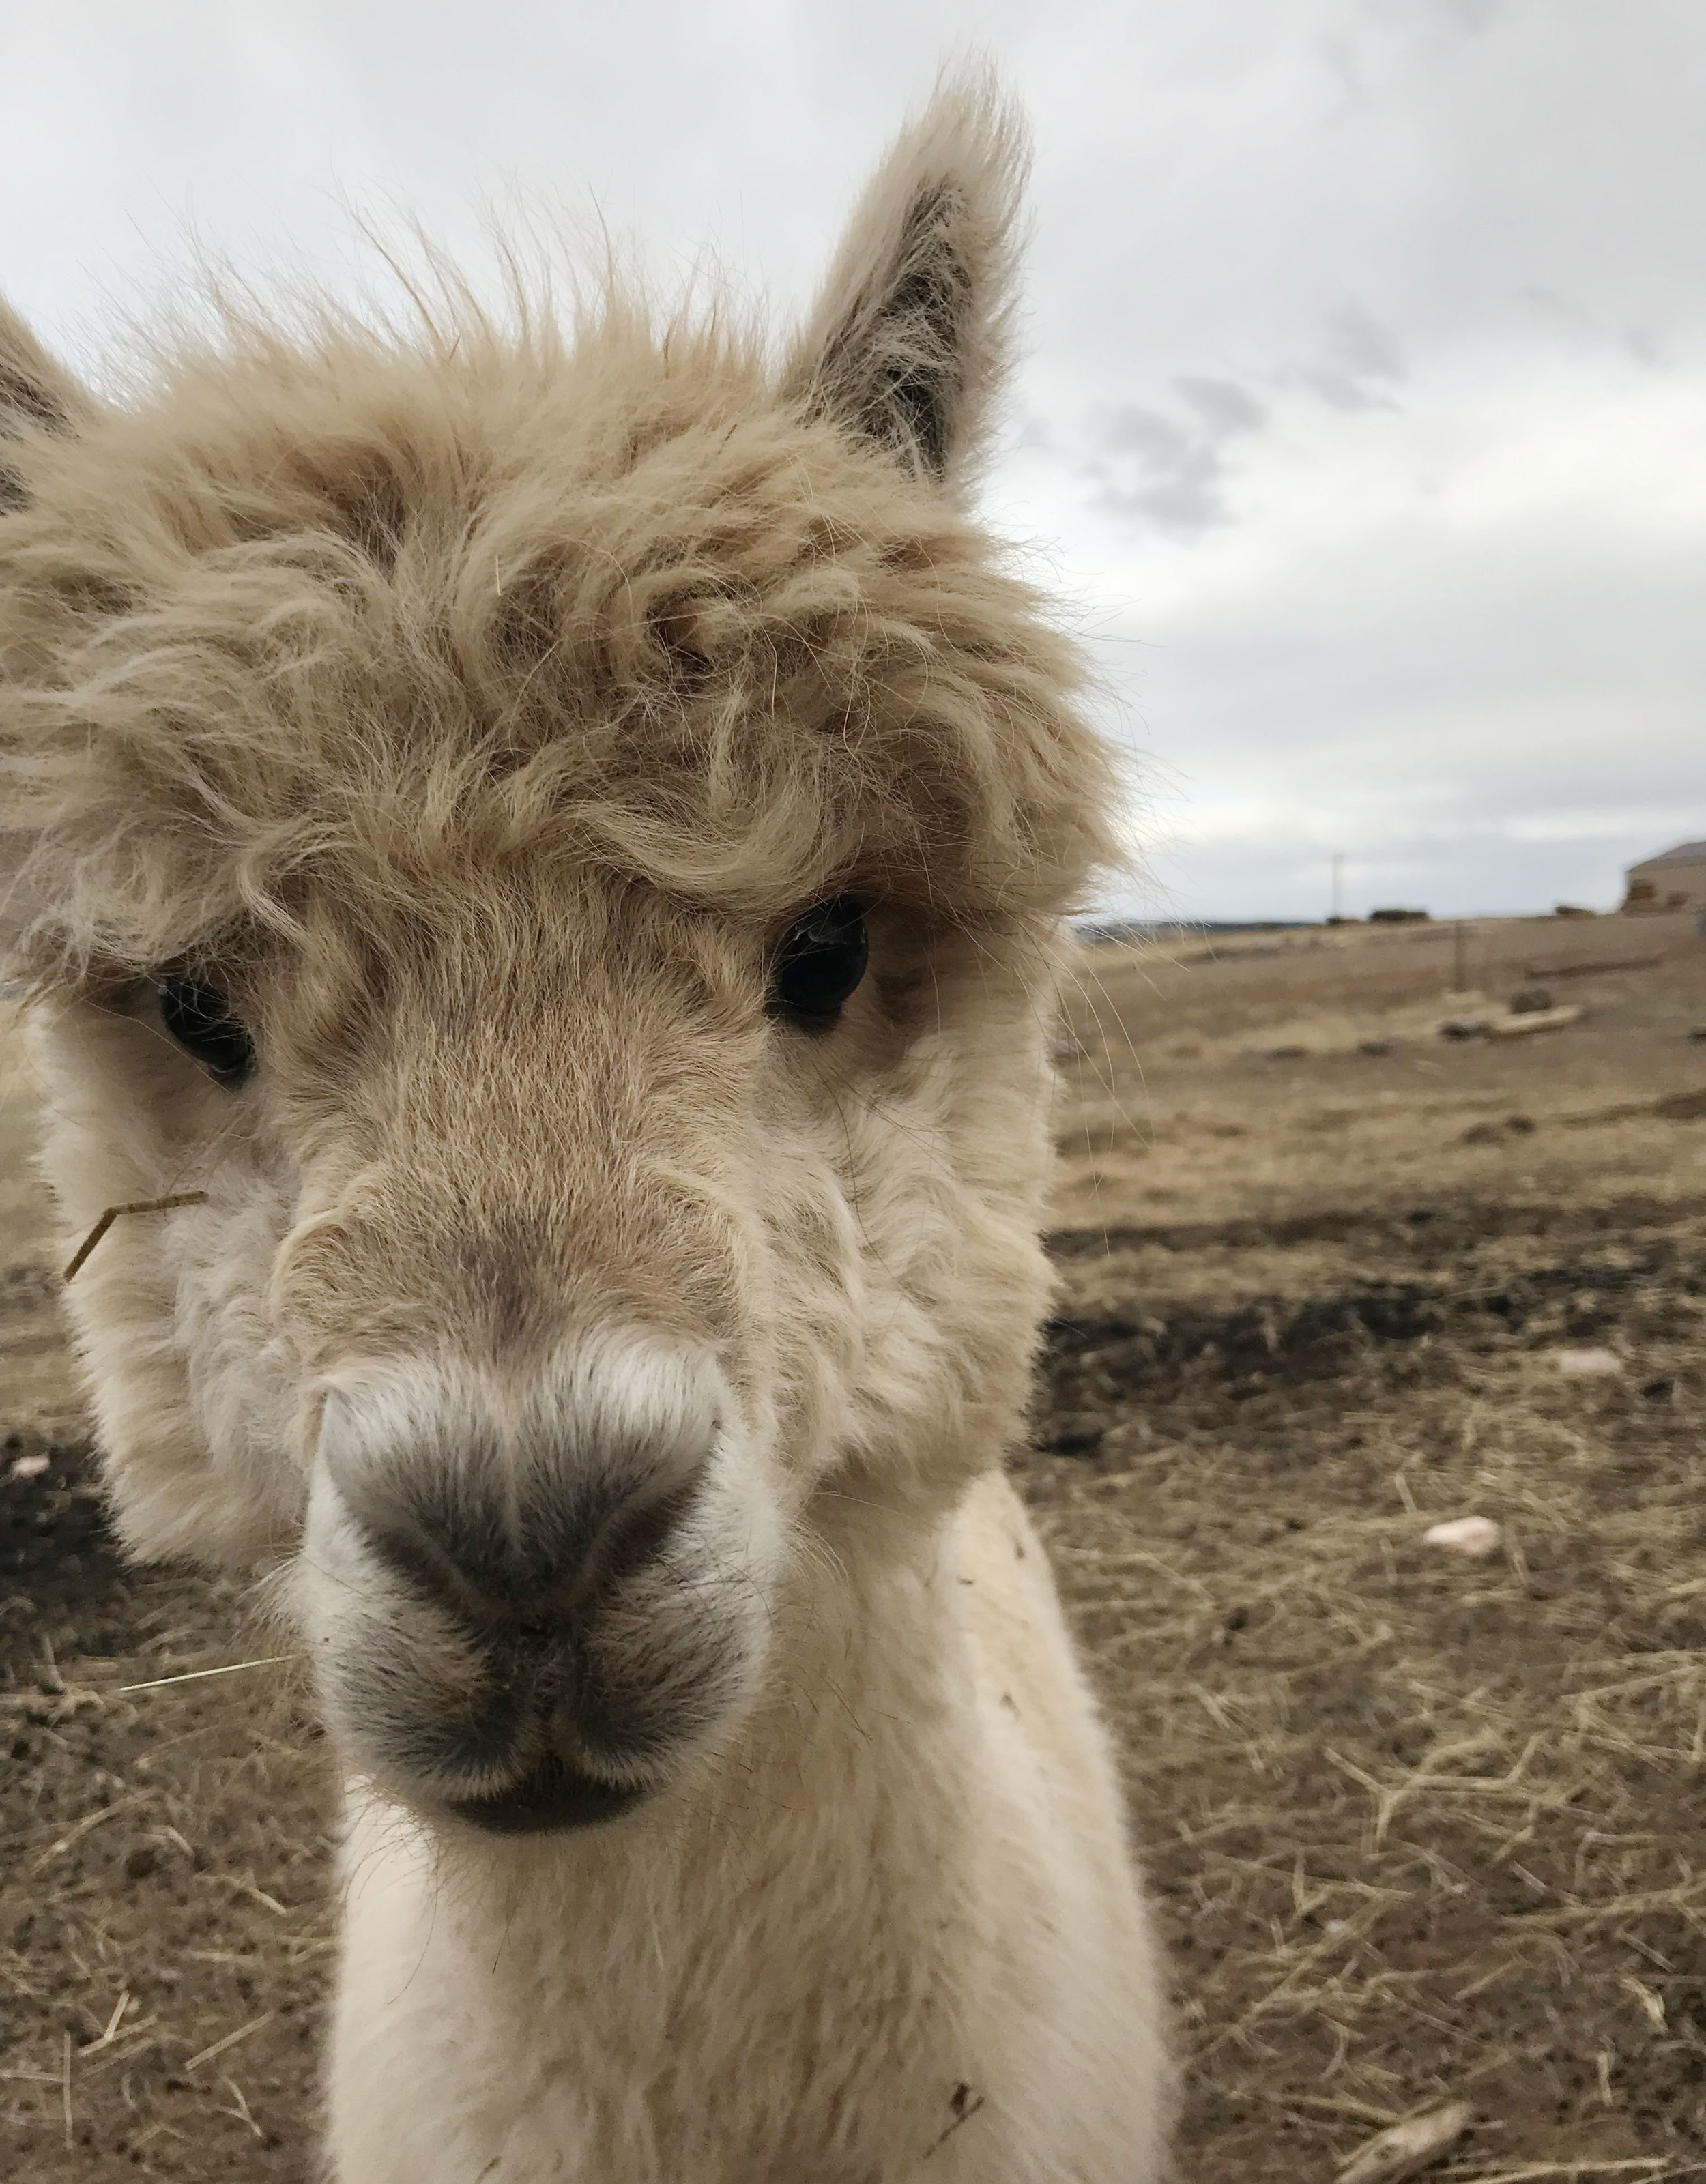 George the alpaca